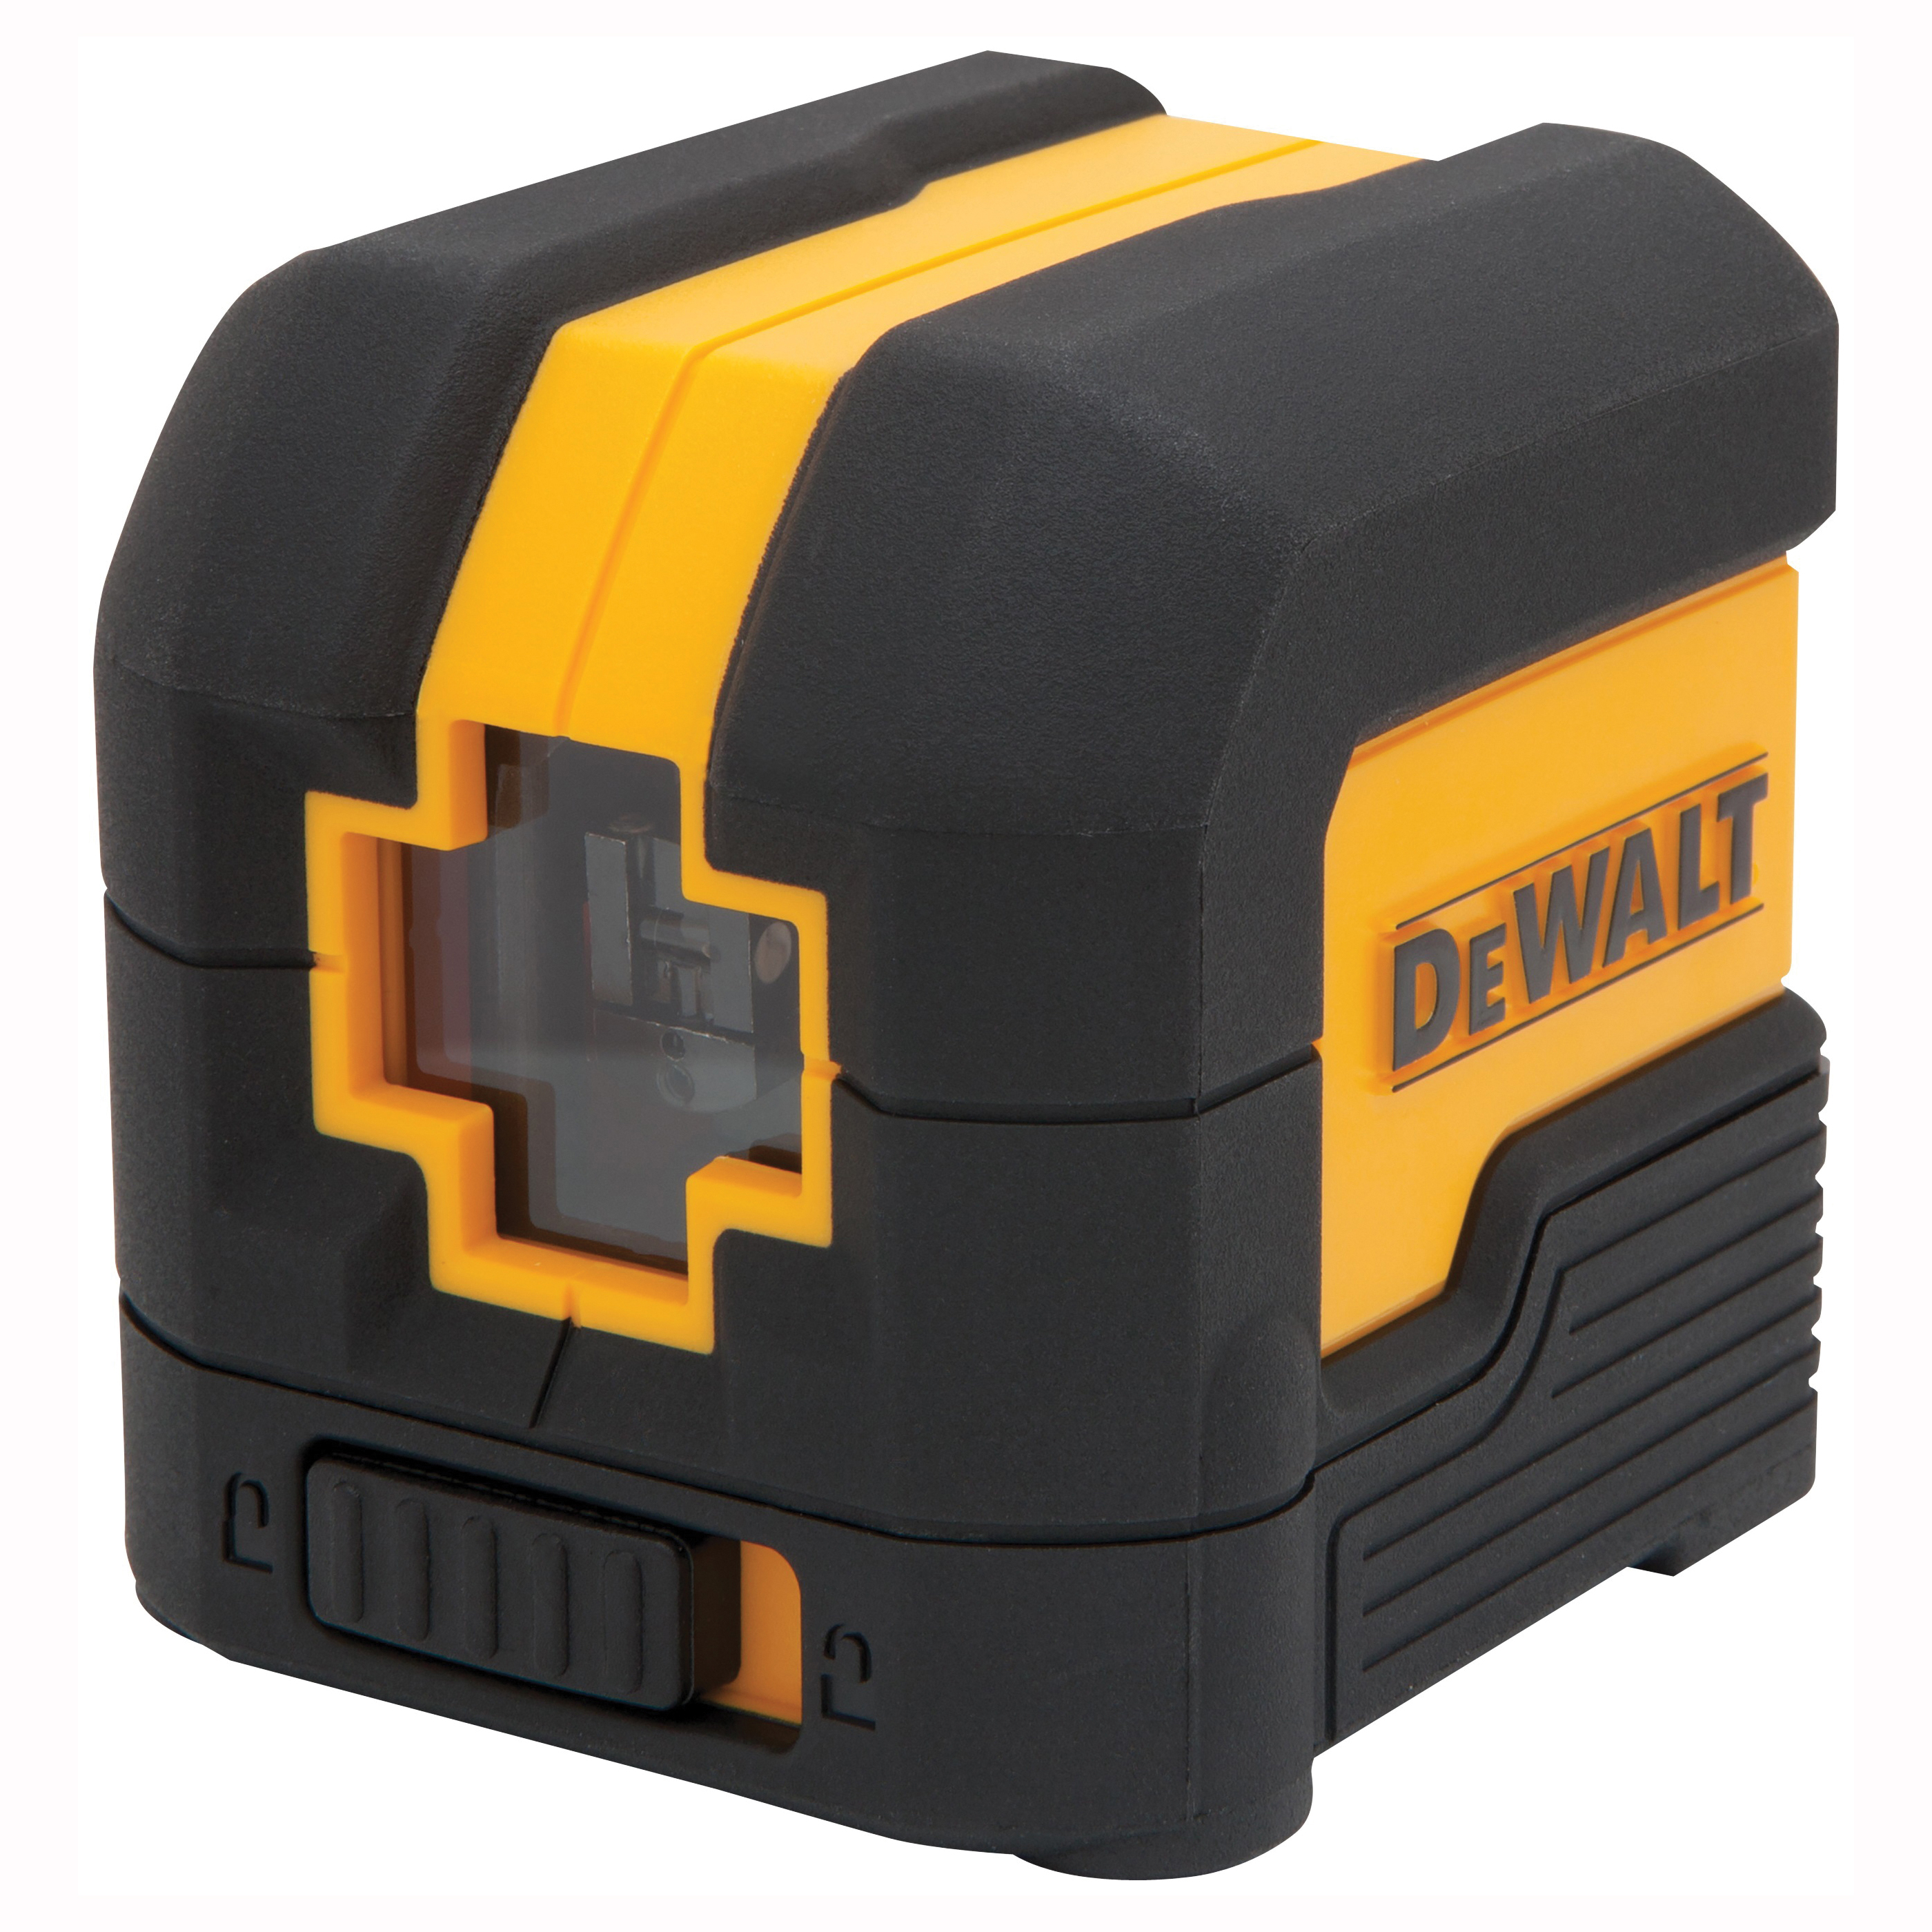 Picture of DeWALT DW08801 Laser Level, 50 ft, +/-1/4 in Accuracy, Red Laser